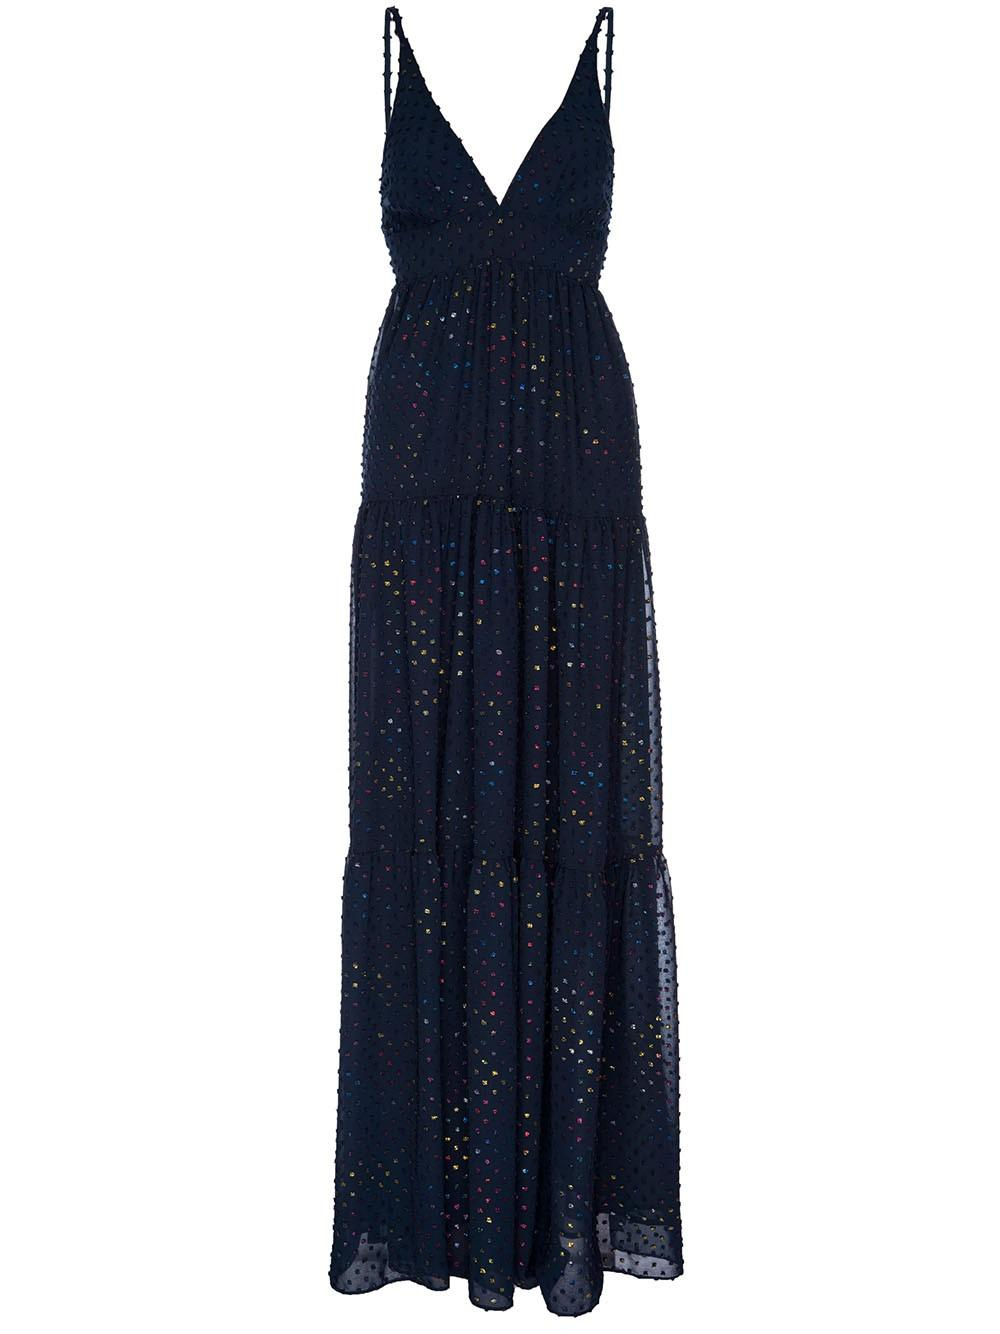 Starry Night Rainbow Maxi Dress